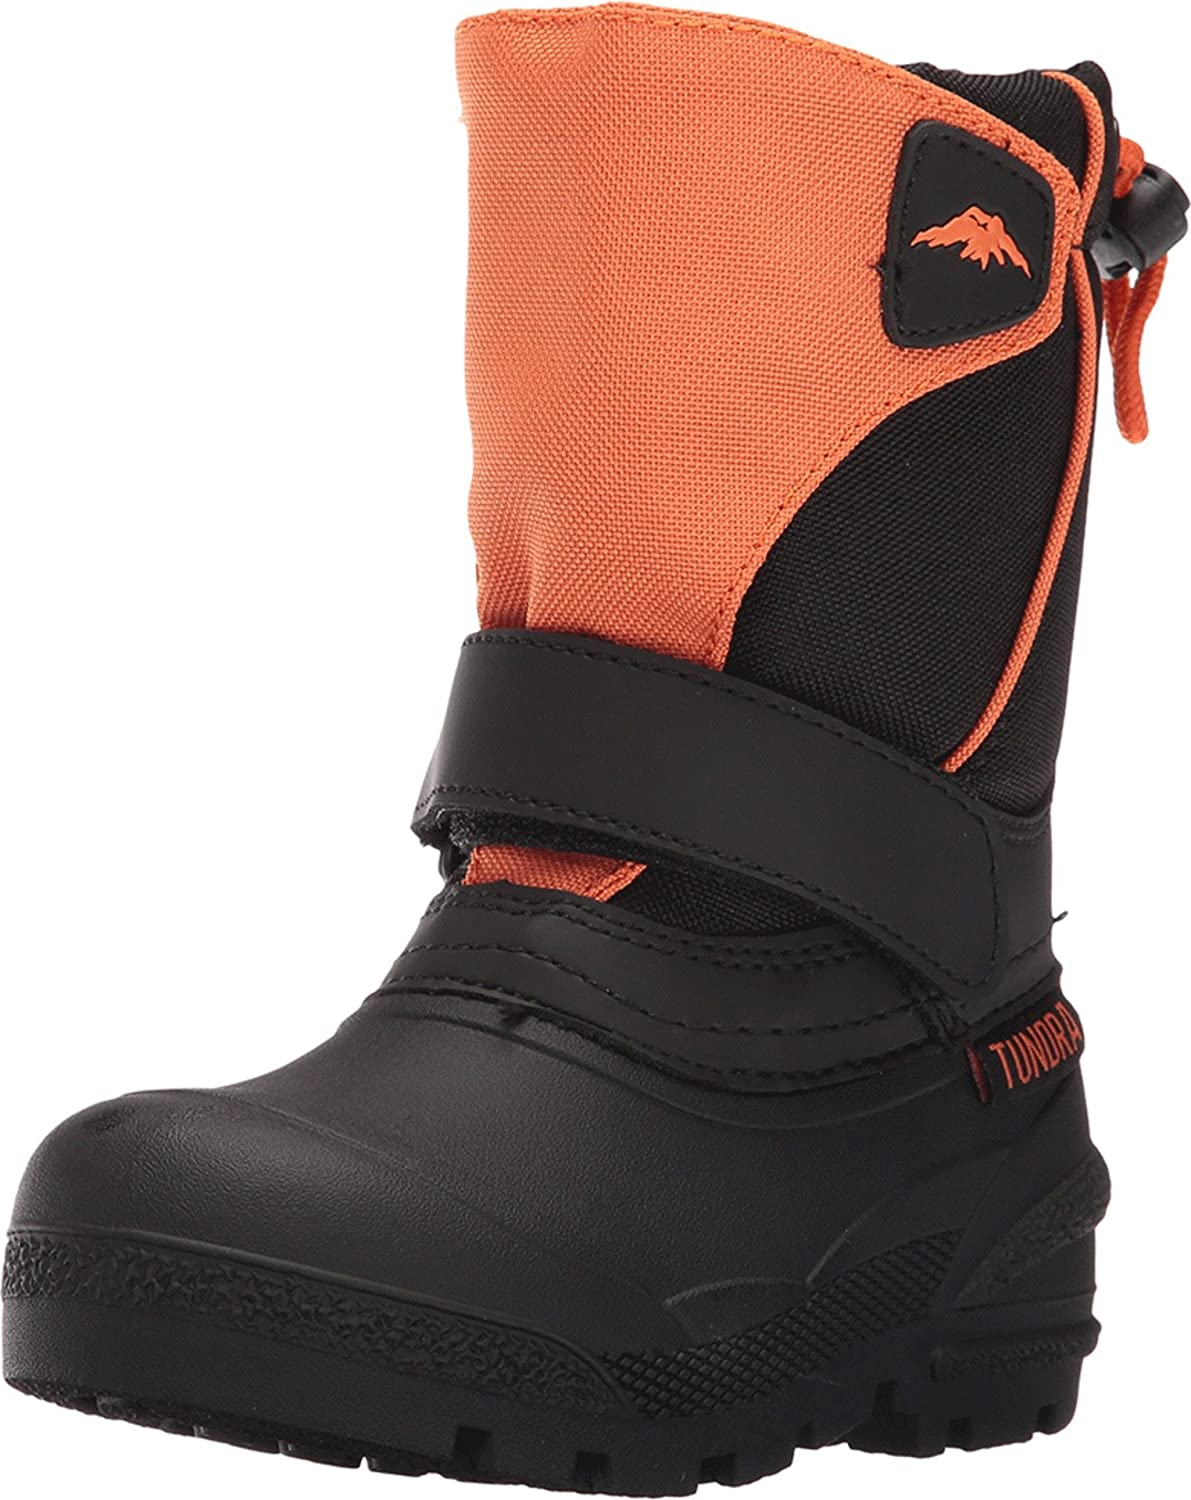 Tundra Boots Kids Unisex Quebec (Toddler/Little Kid/Big Kid)